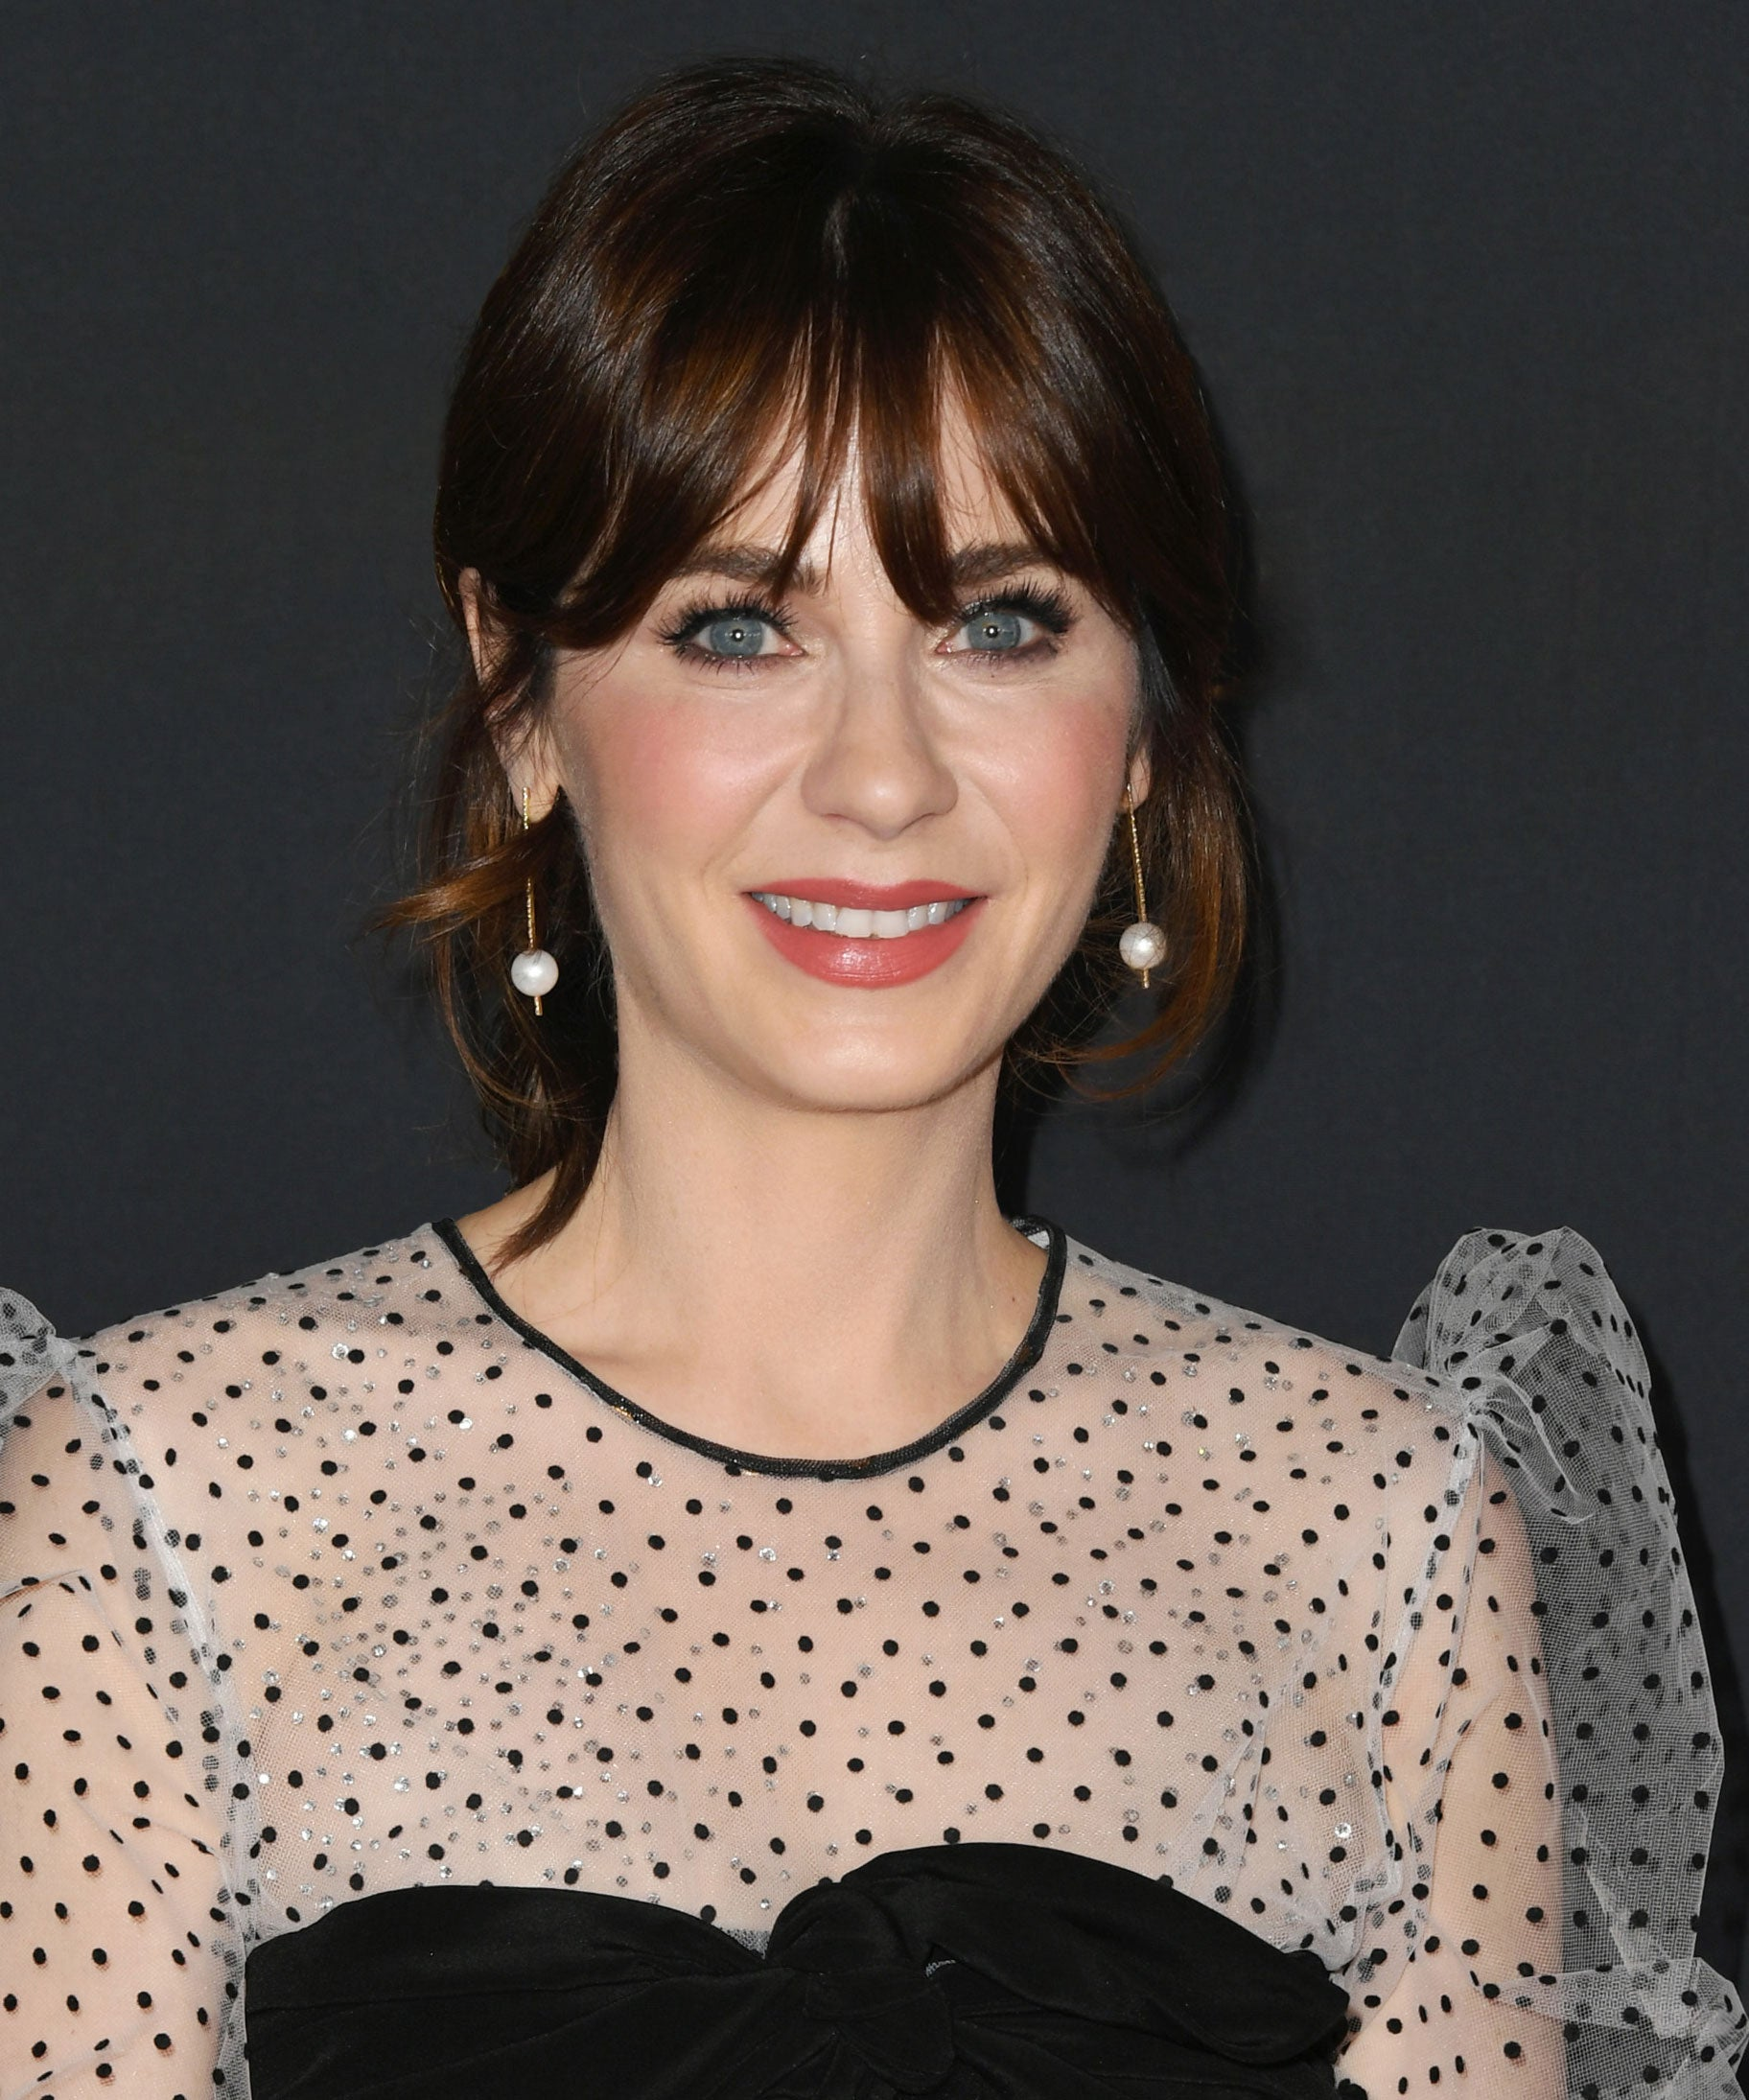 Zooey Deschanel Just Went Way Lighter With Her Hair Colour